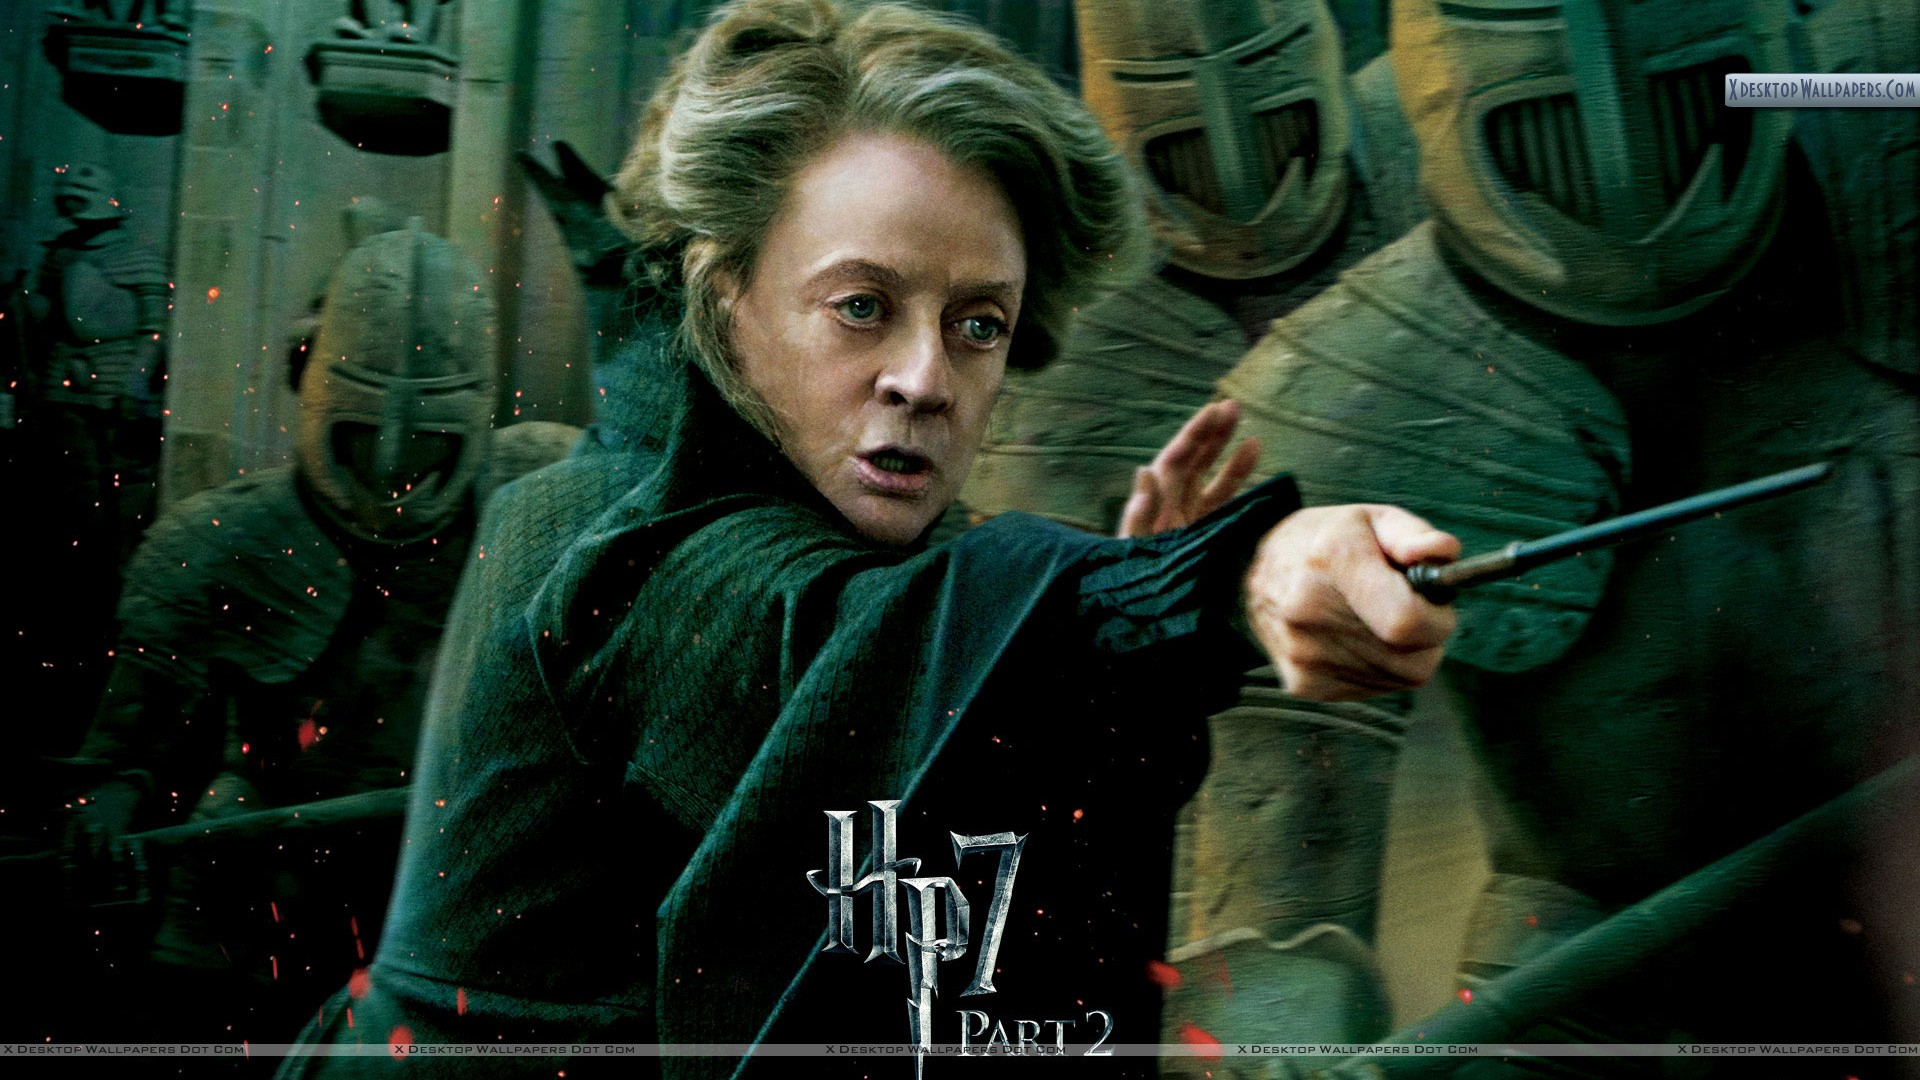 Maggie Smith In Harry Potter And The Deathly Hallows Part 2 Wallpaper